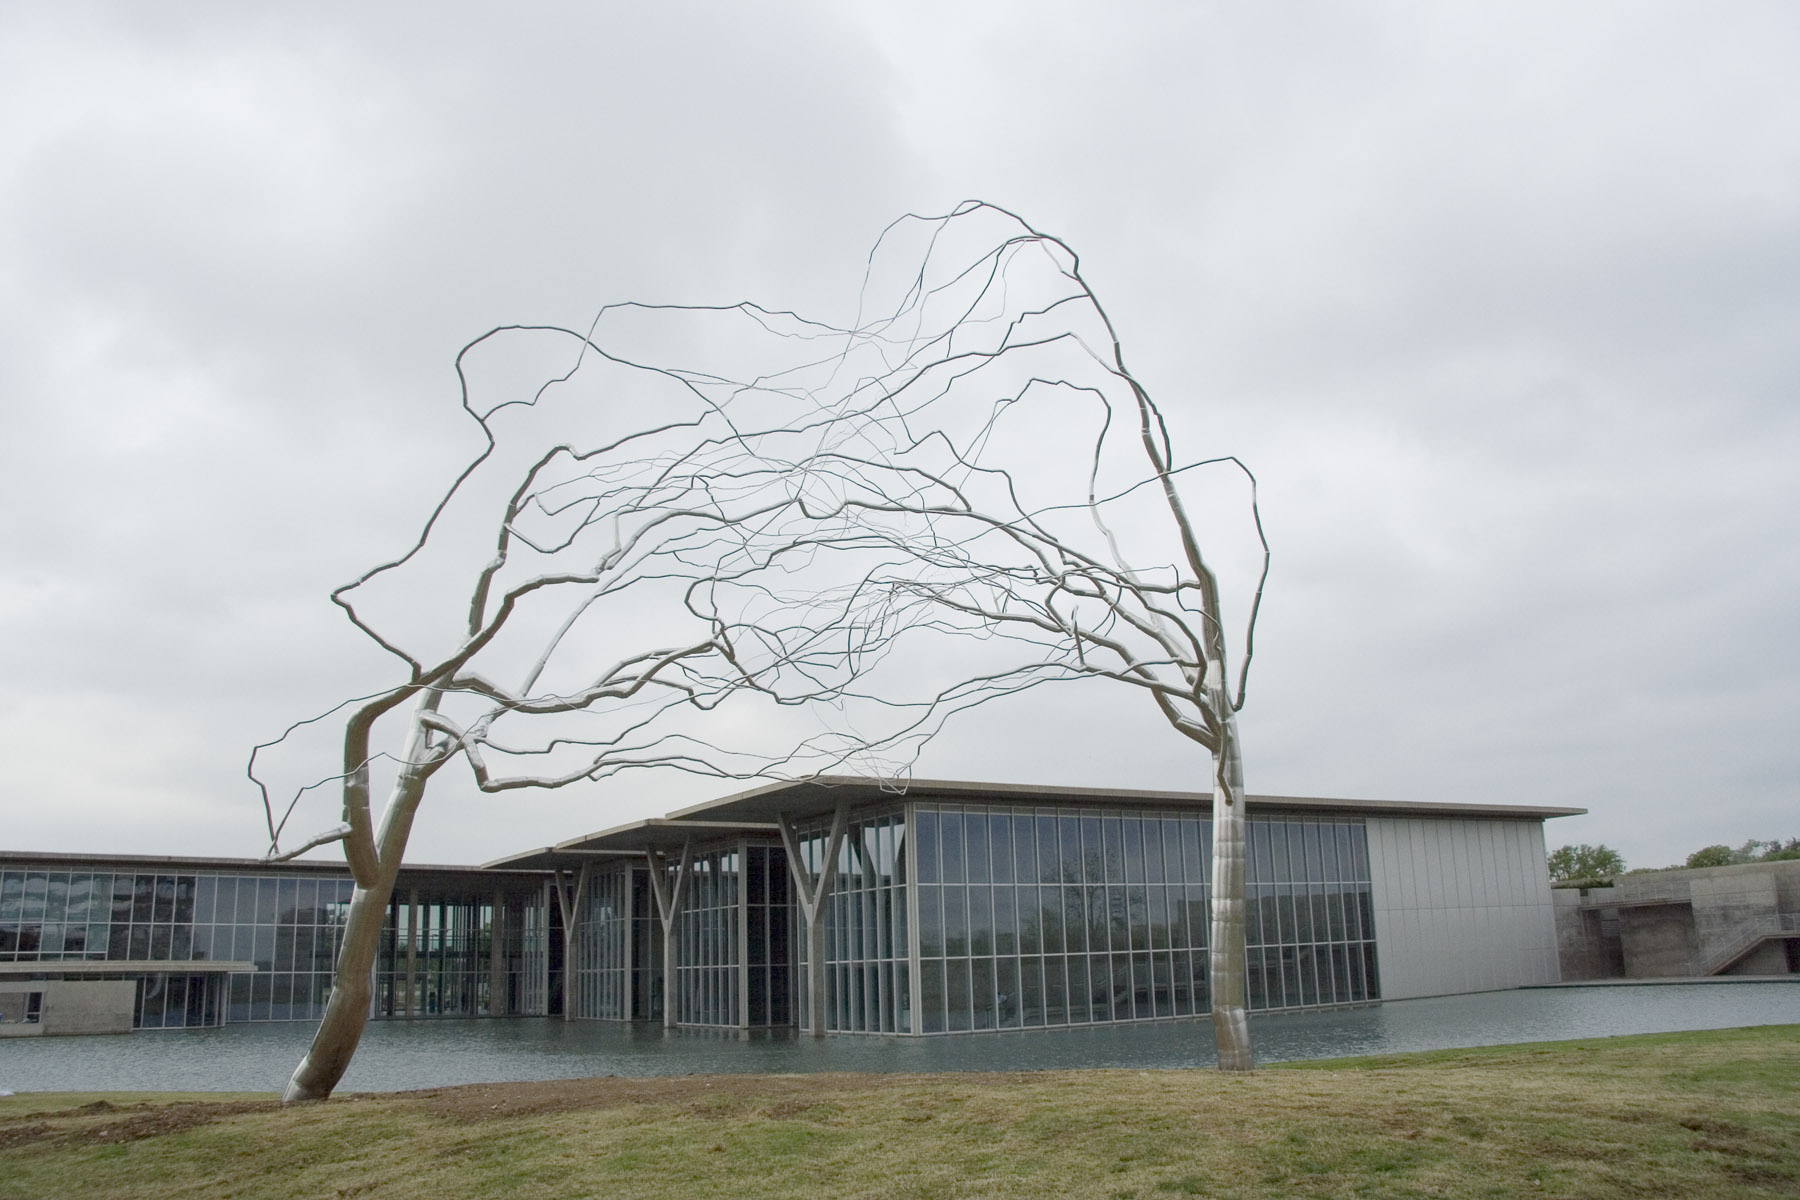 roxy paine conjoined essay Roxy paine sculpture of conjoined trees at the fort worth museum of modern art  is a beautiful example of how a new material can change our perspective of a.